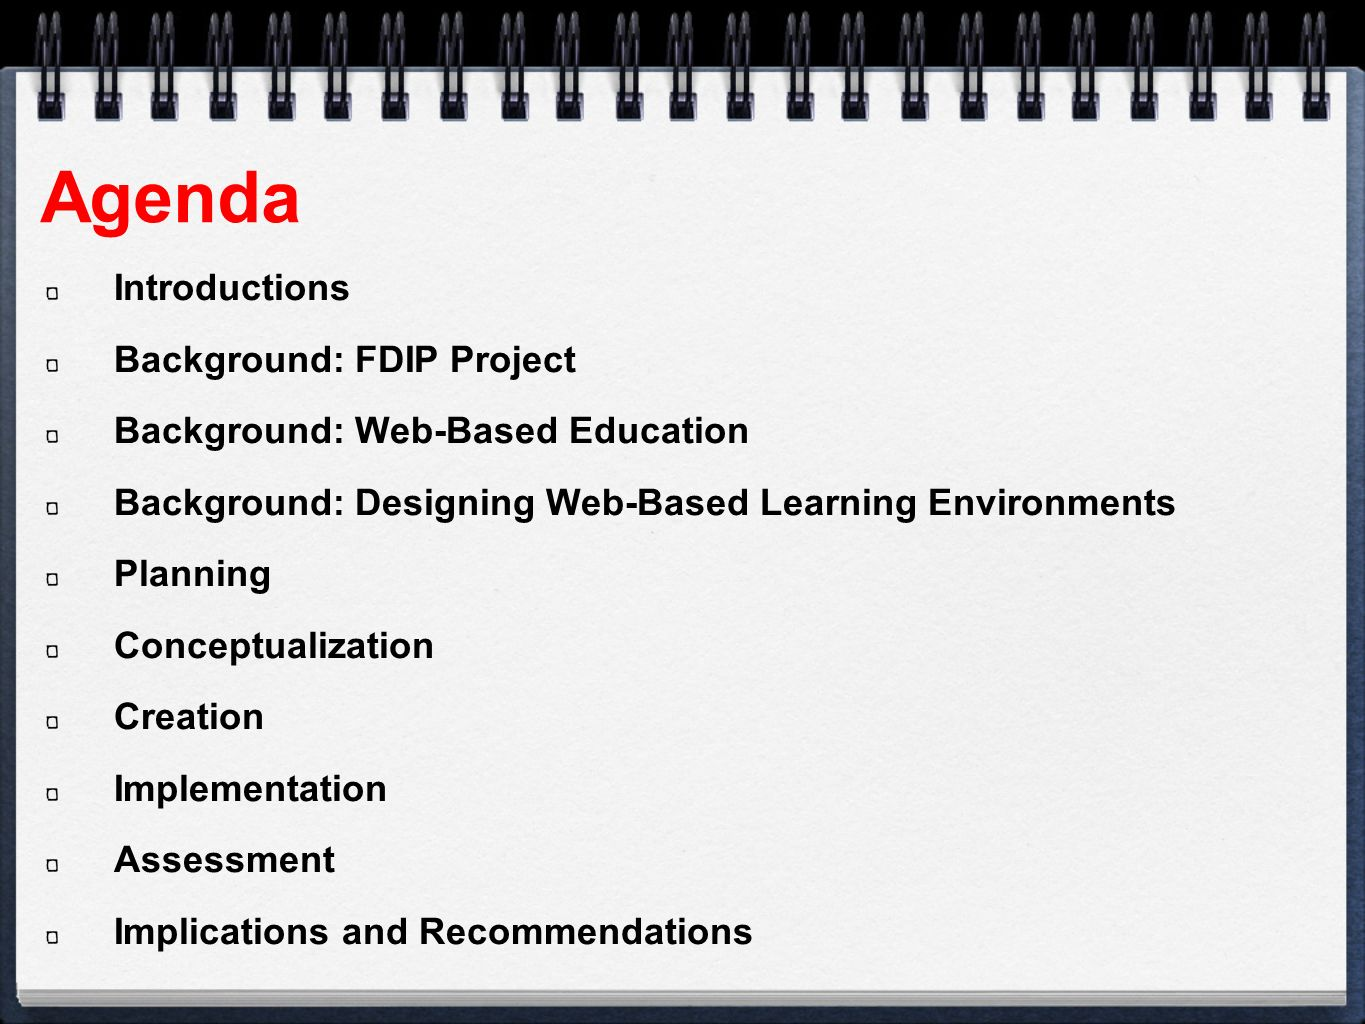 Agenda Introductions Background: FDIP Project Background: Web-Based Education Background: Designing Web-Based Learning Environments Planning Conceptualization Creation Implementation Assessment Implications and Recommendations